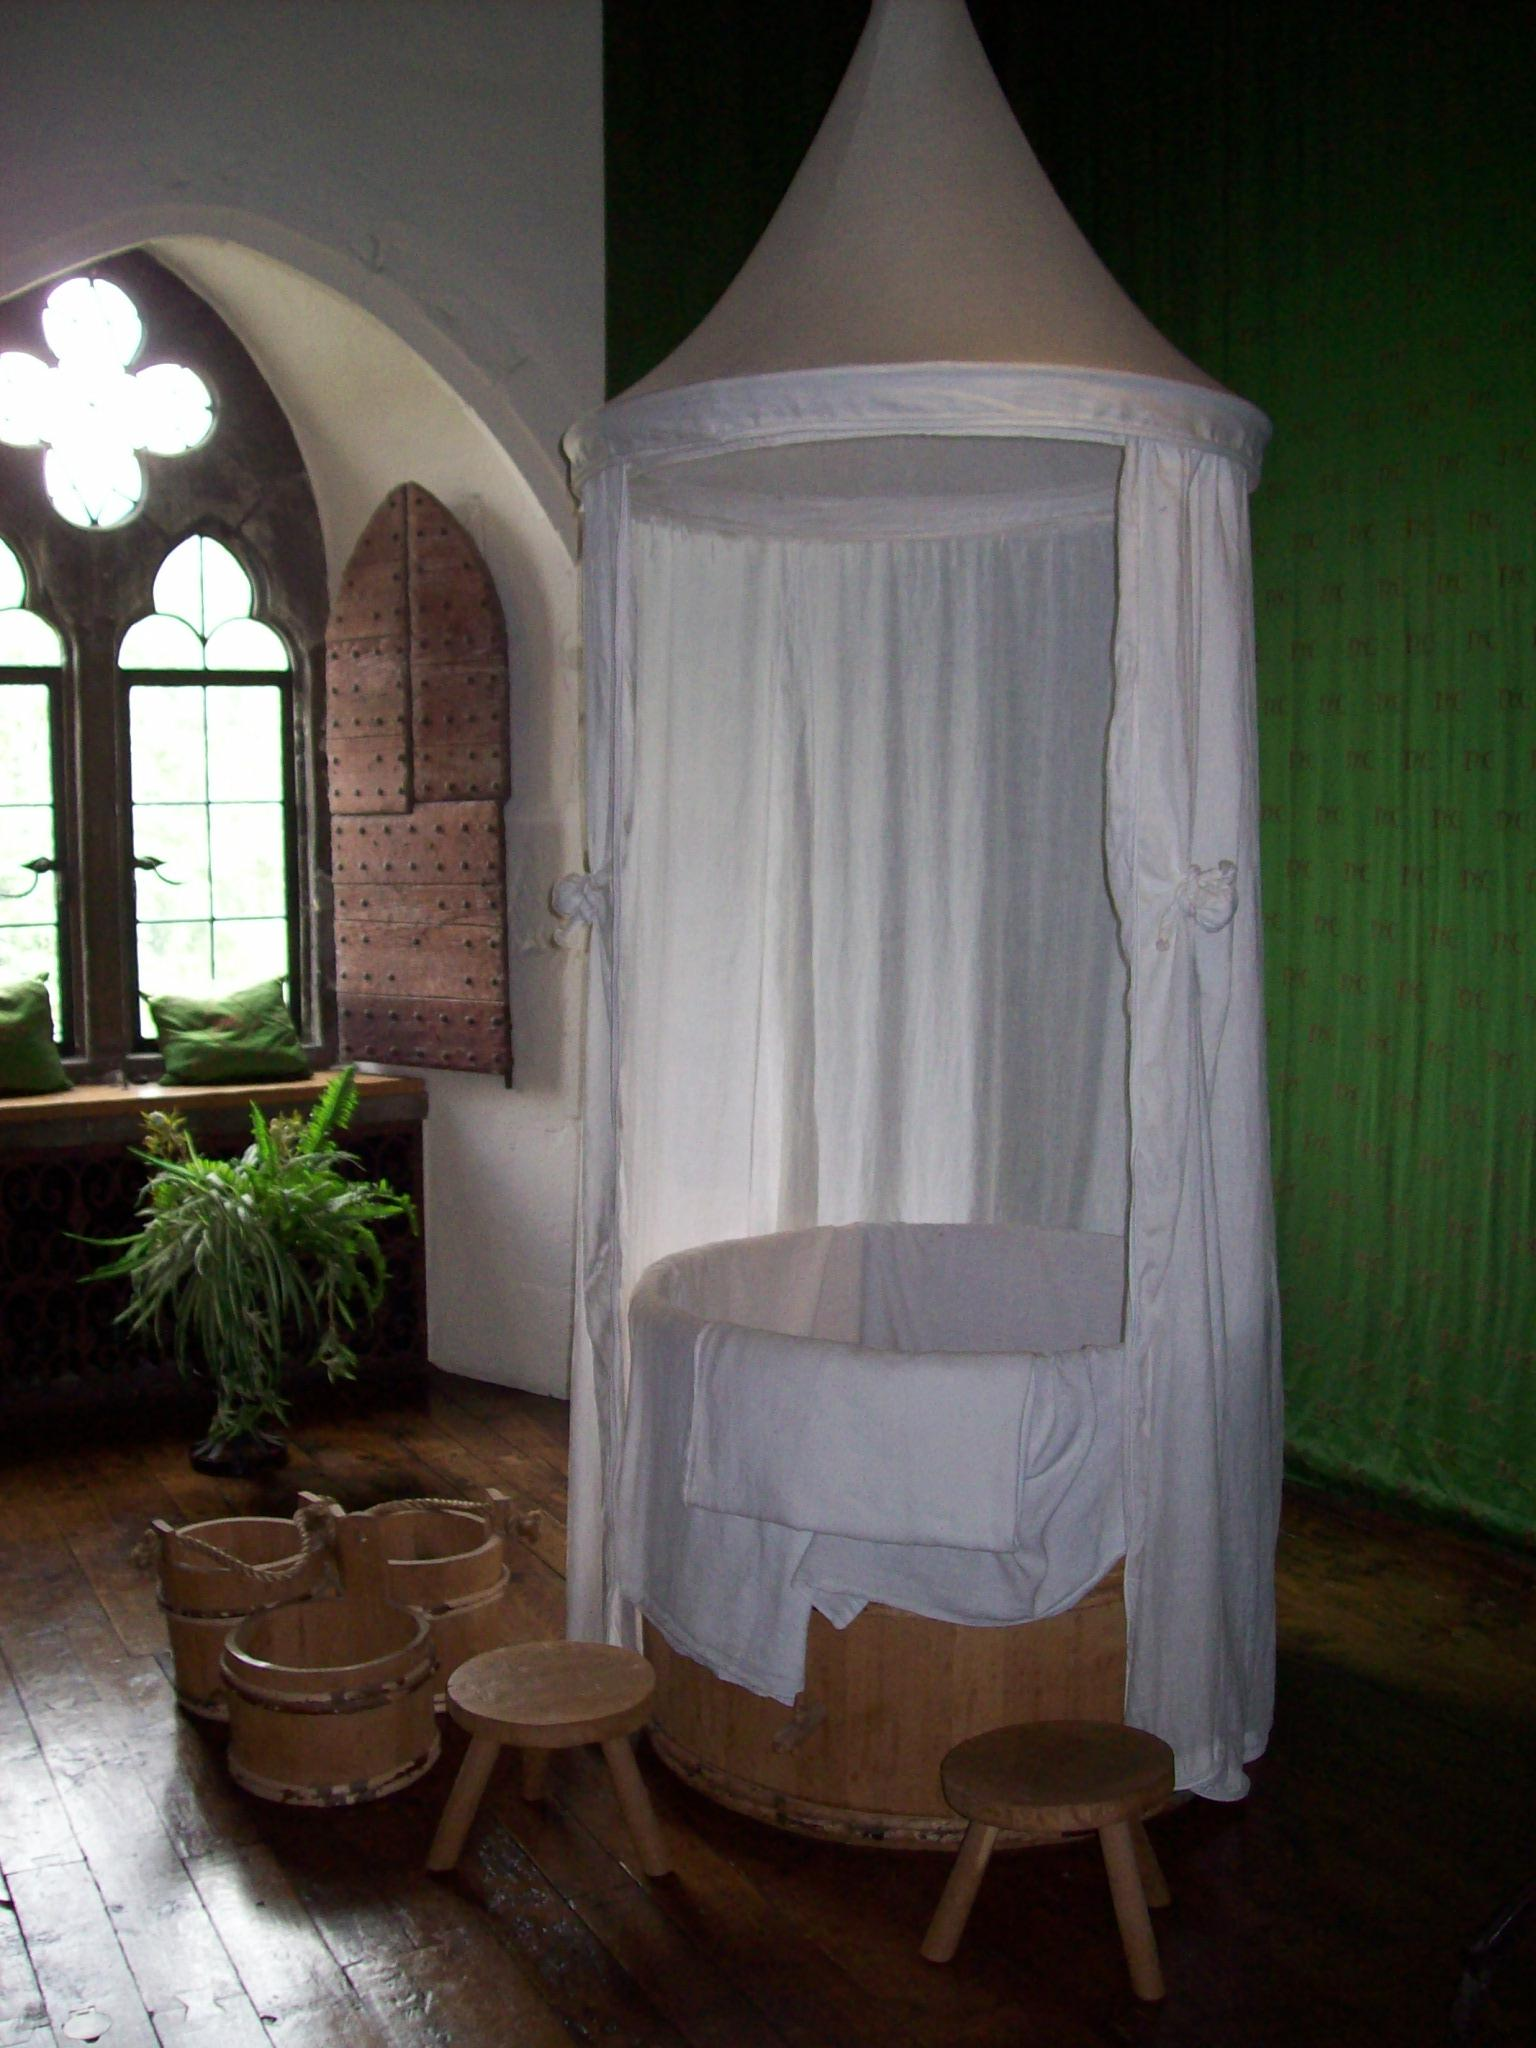 Pin by snowmoon on medieval Medieval furniture, Medieval